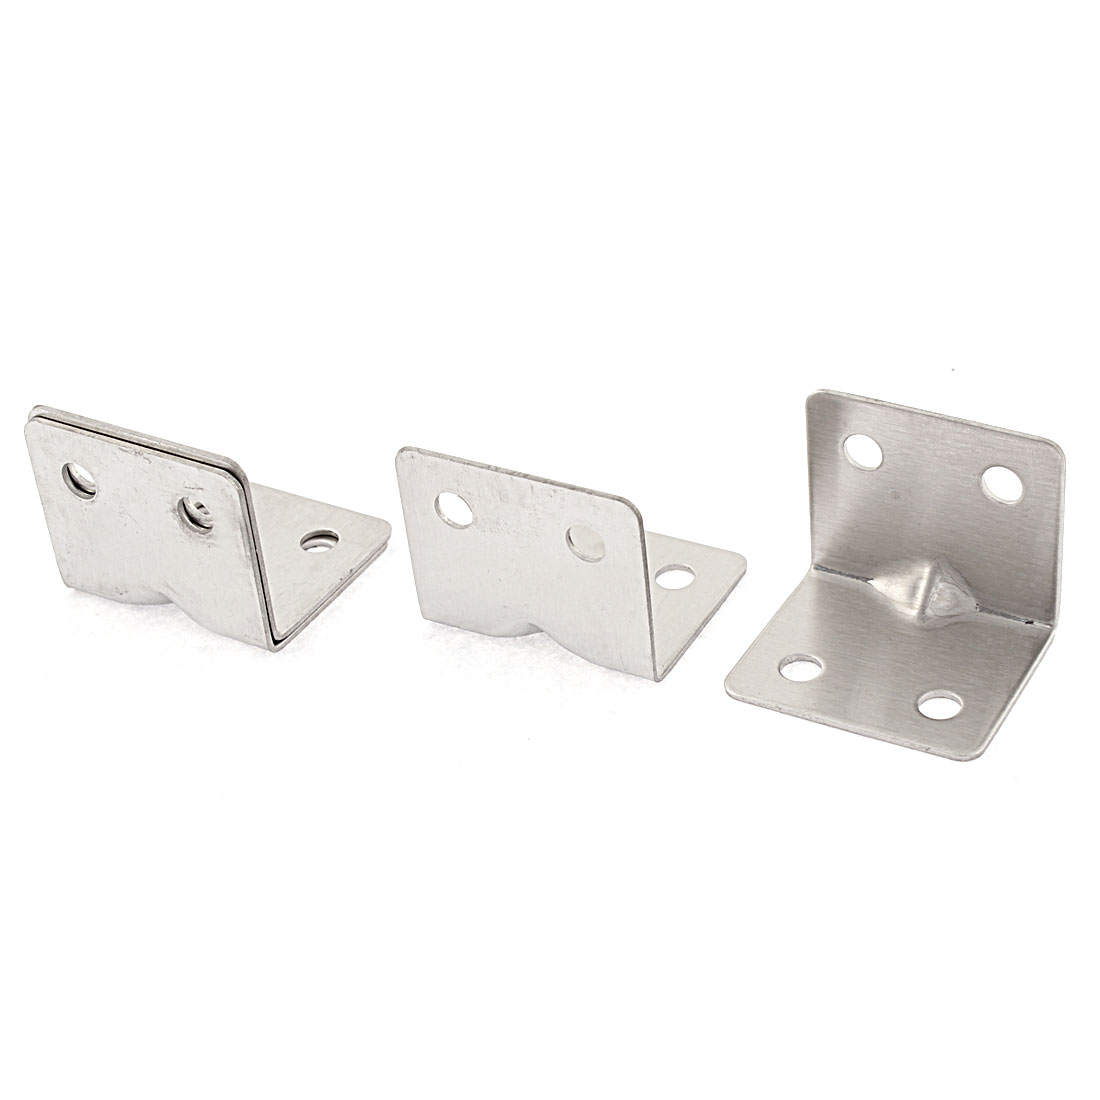 Stainless Steel Shelf Wall Corner Brace Right Angle Bracket 31mm x 31mm x 37mm 4Pcs